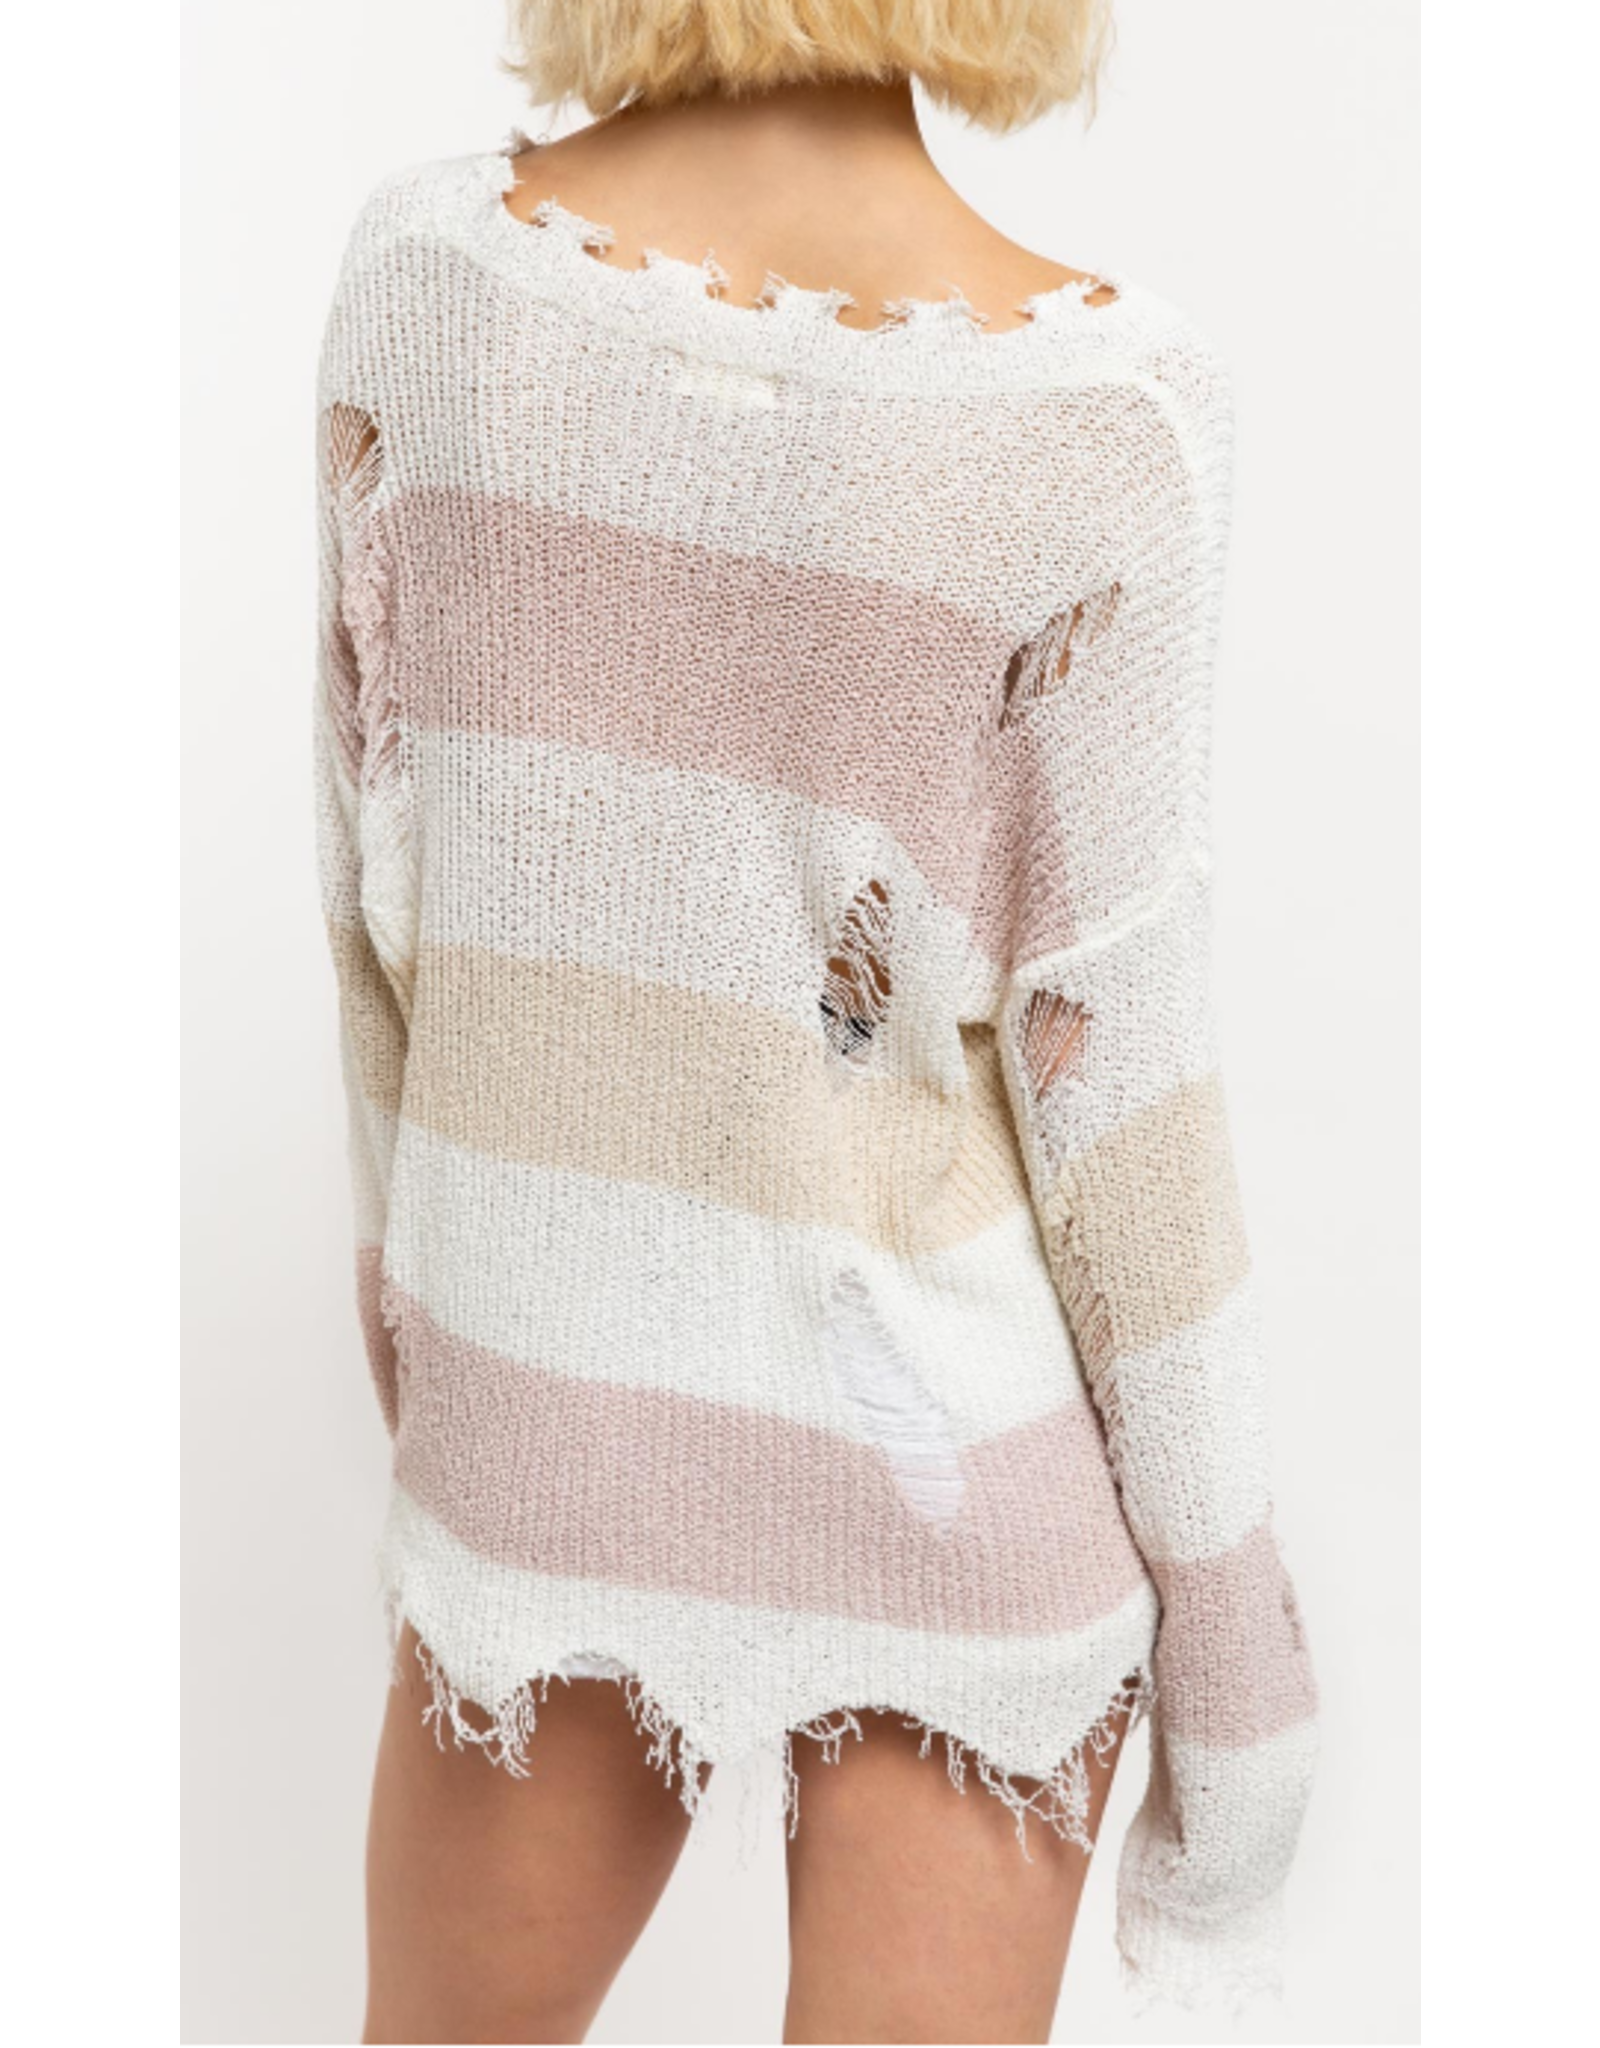 Lightweight Distressed Striped Sweater - Rose